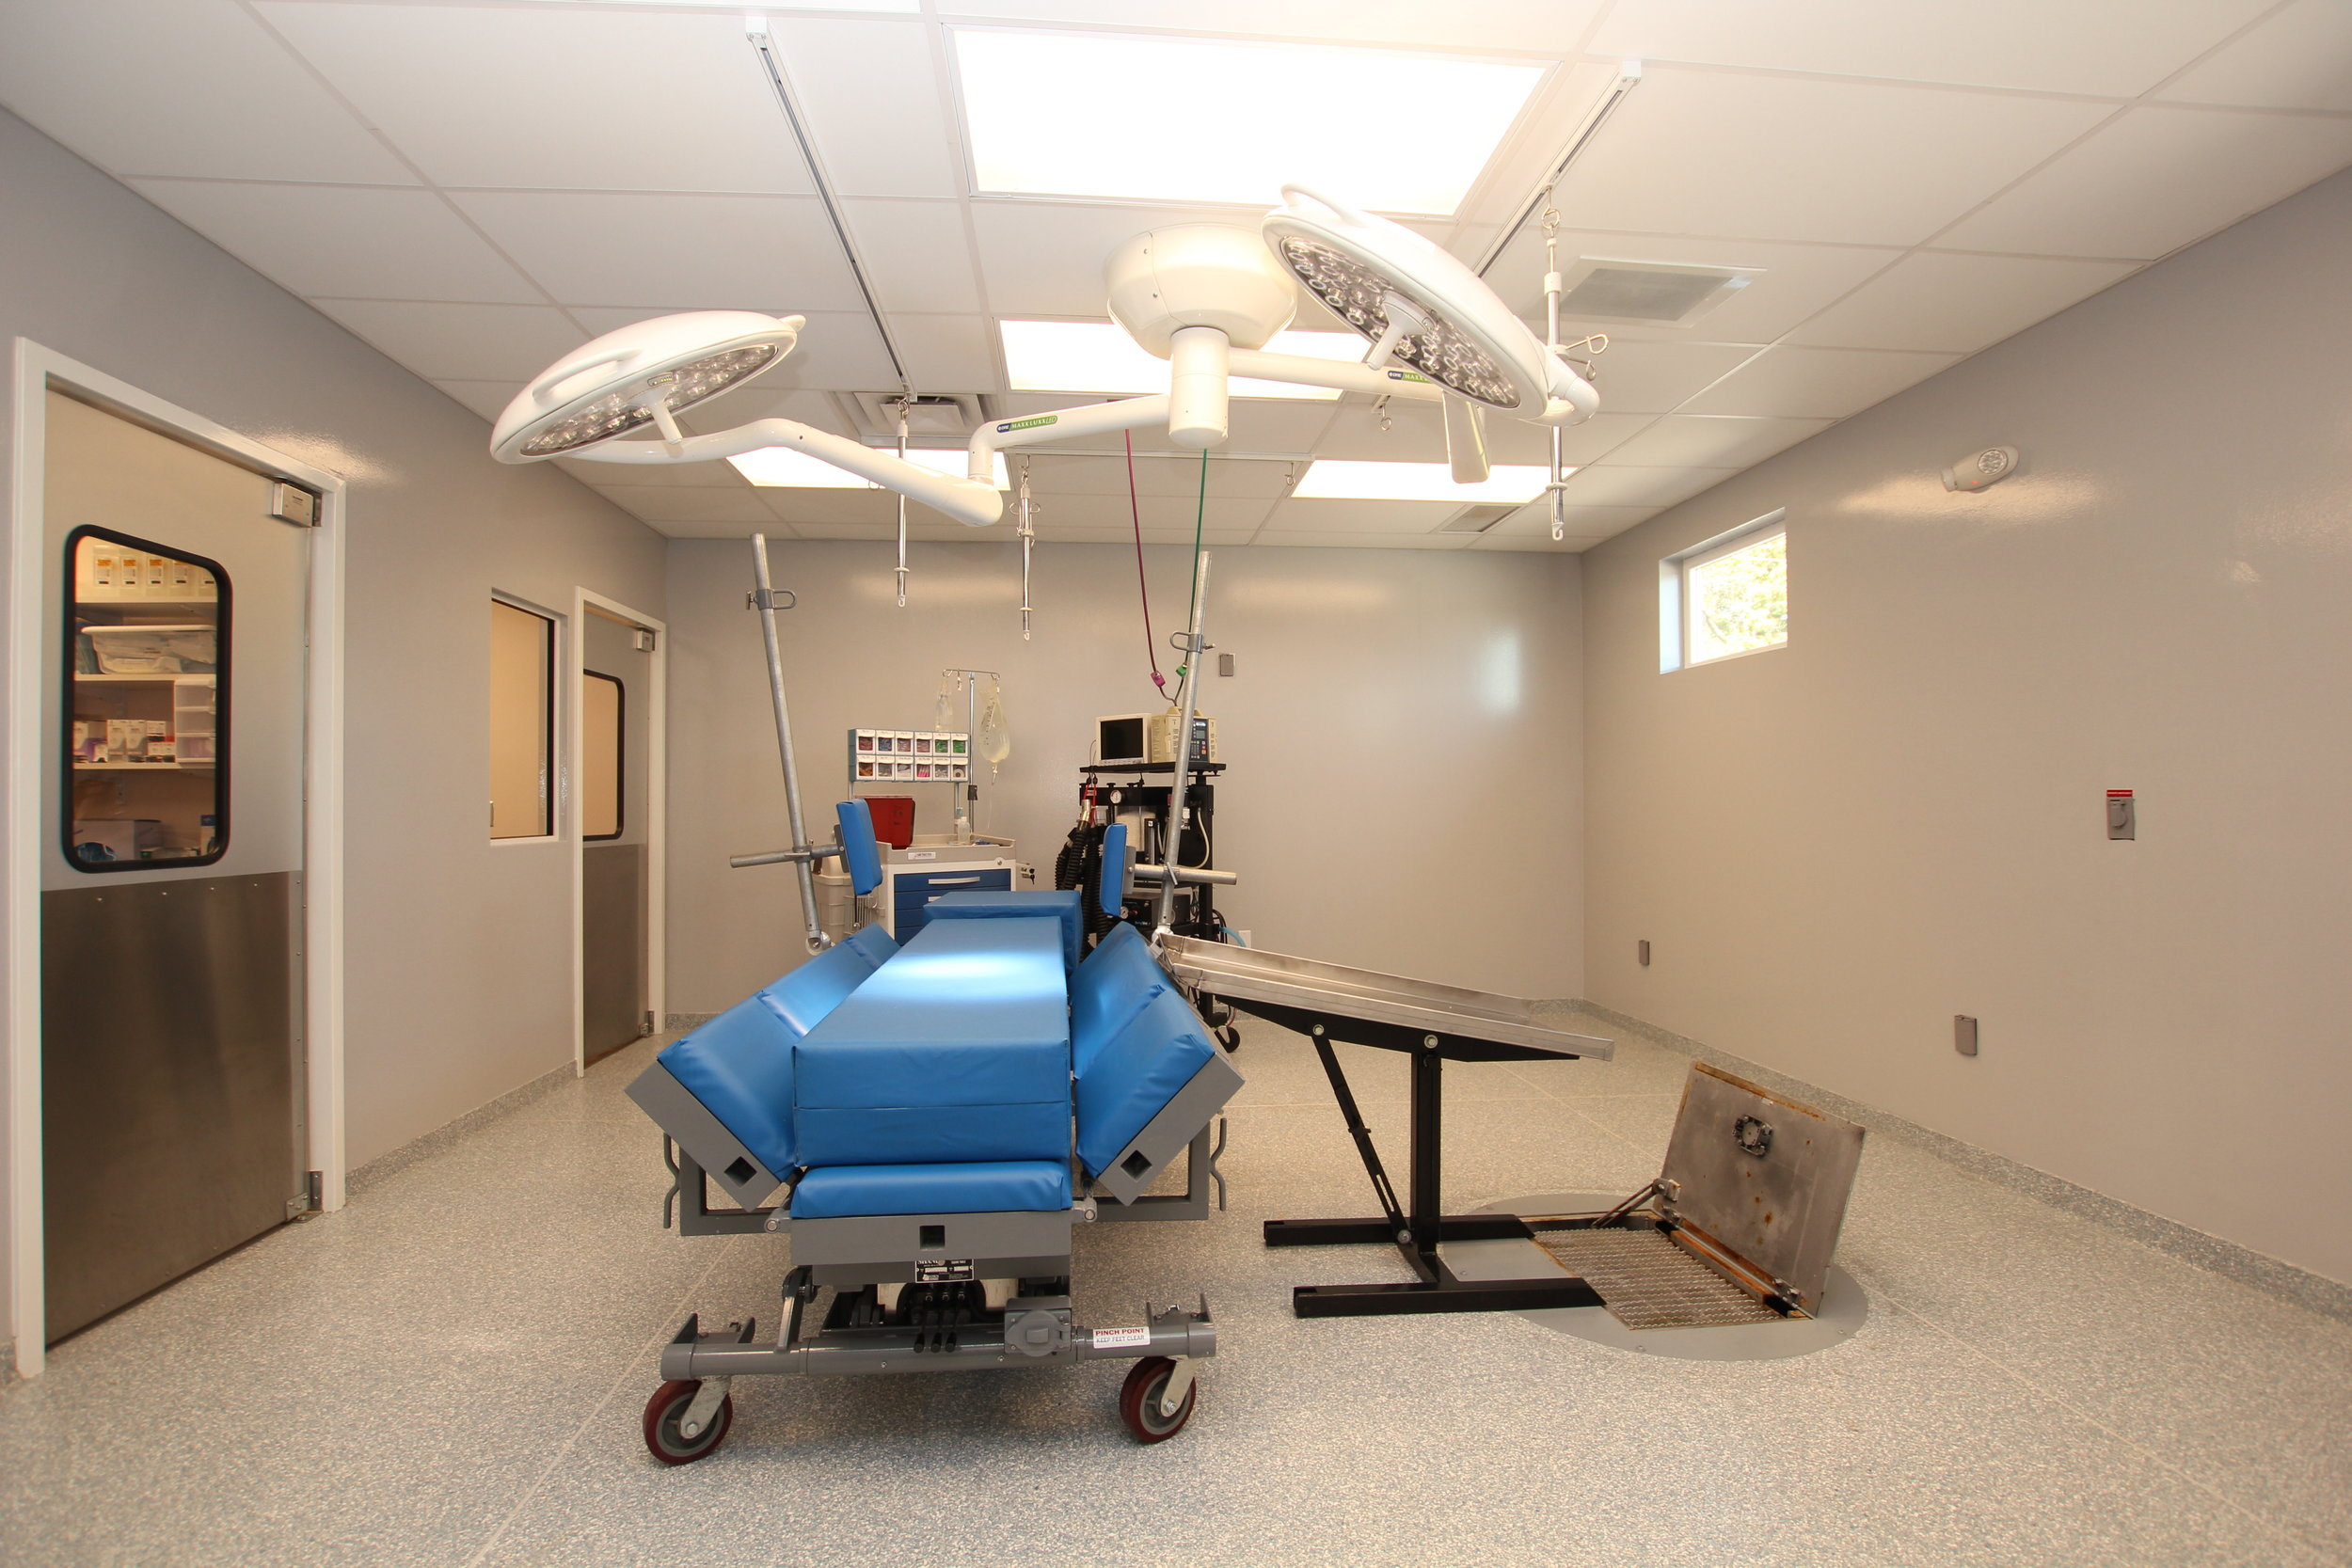 Fully equipped surgical suite